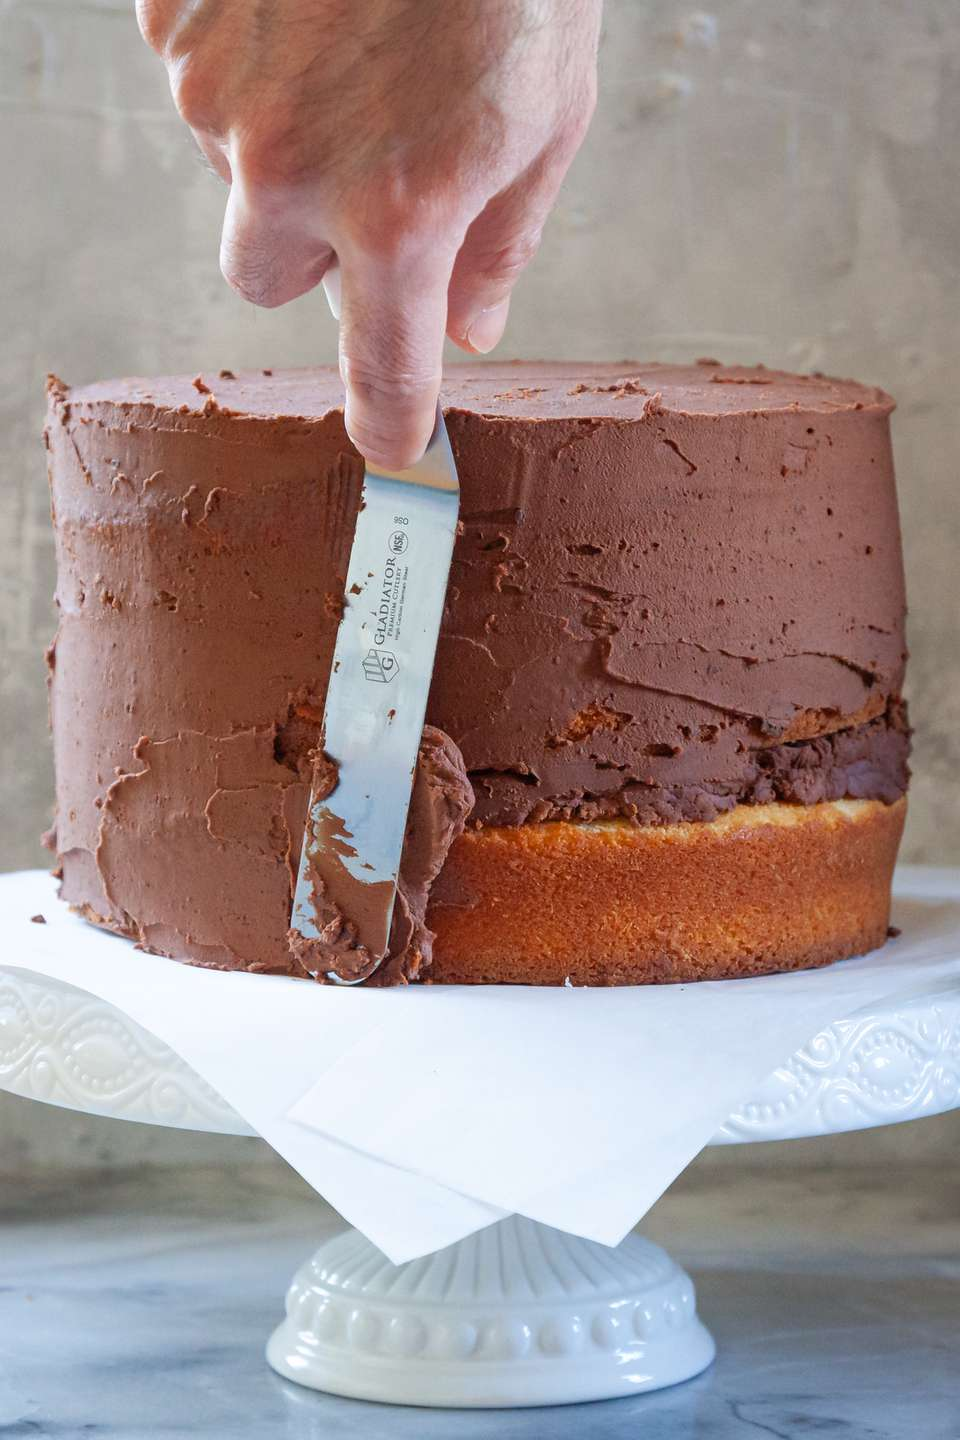 A cake being frosted with chocolate frosting on a cake stand to show cake frosting technique.